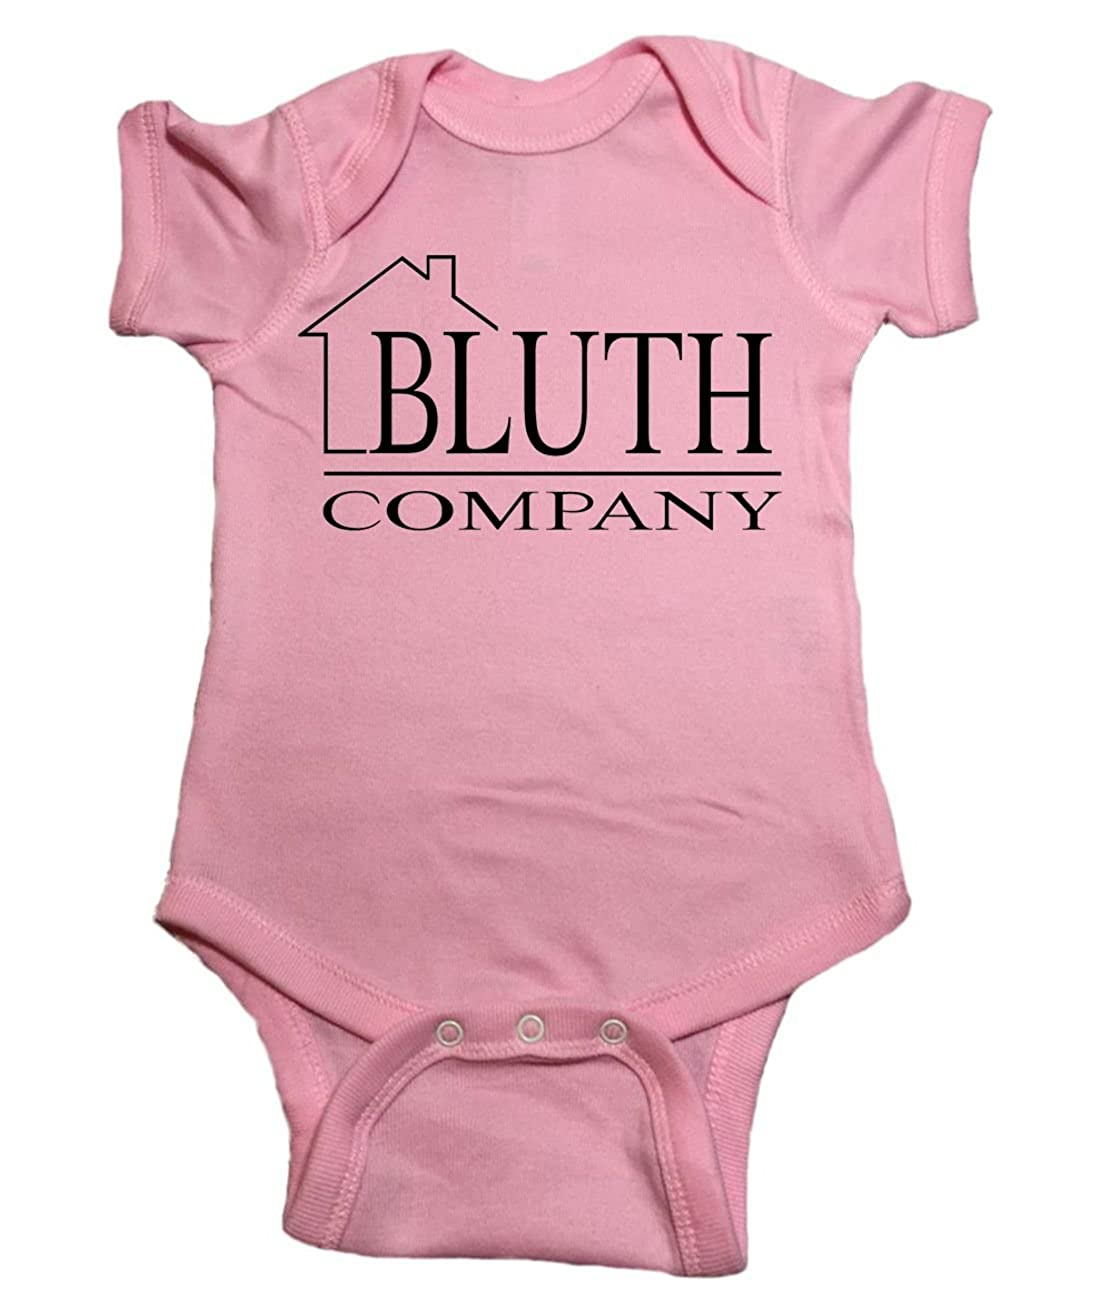 NorthStarTees Arrested Development Baby One Piece Bluth Company Bodysuit